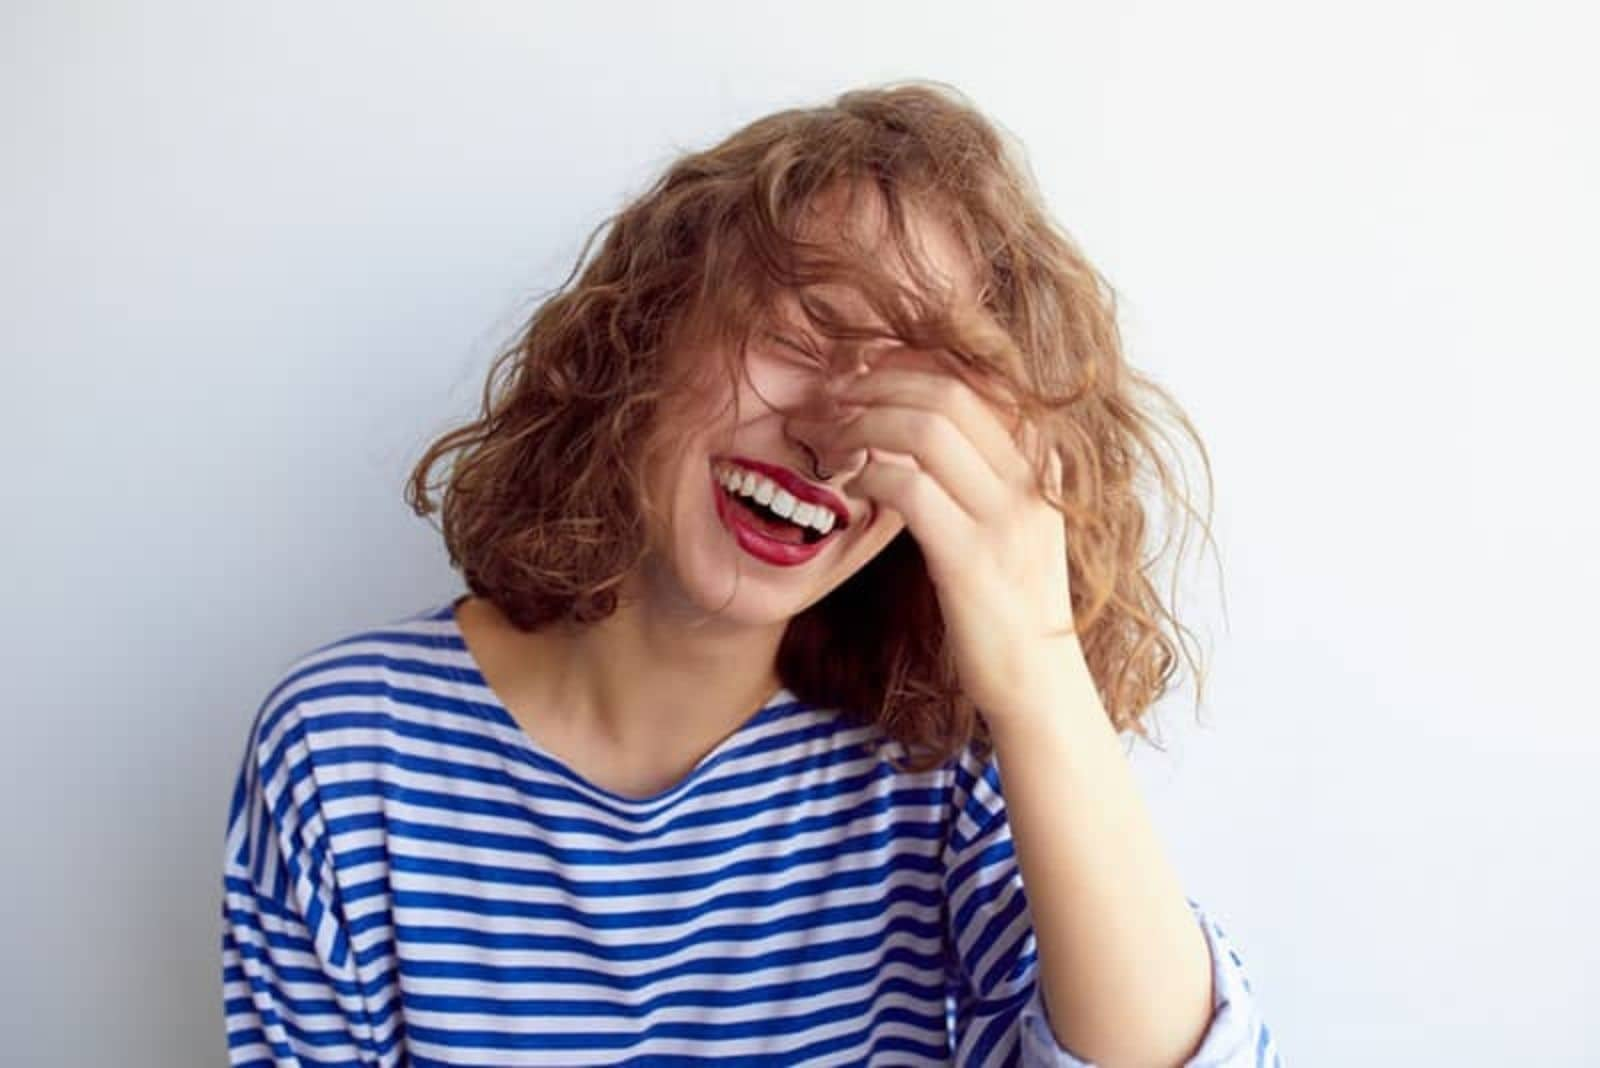 a woman with shorter brown hair laughs